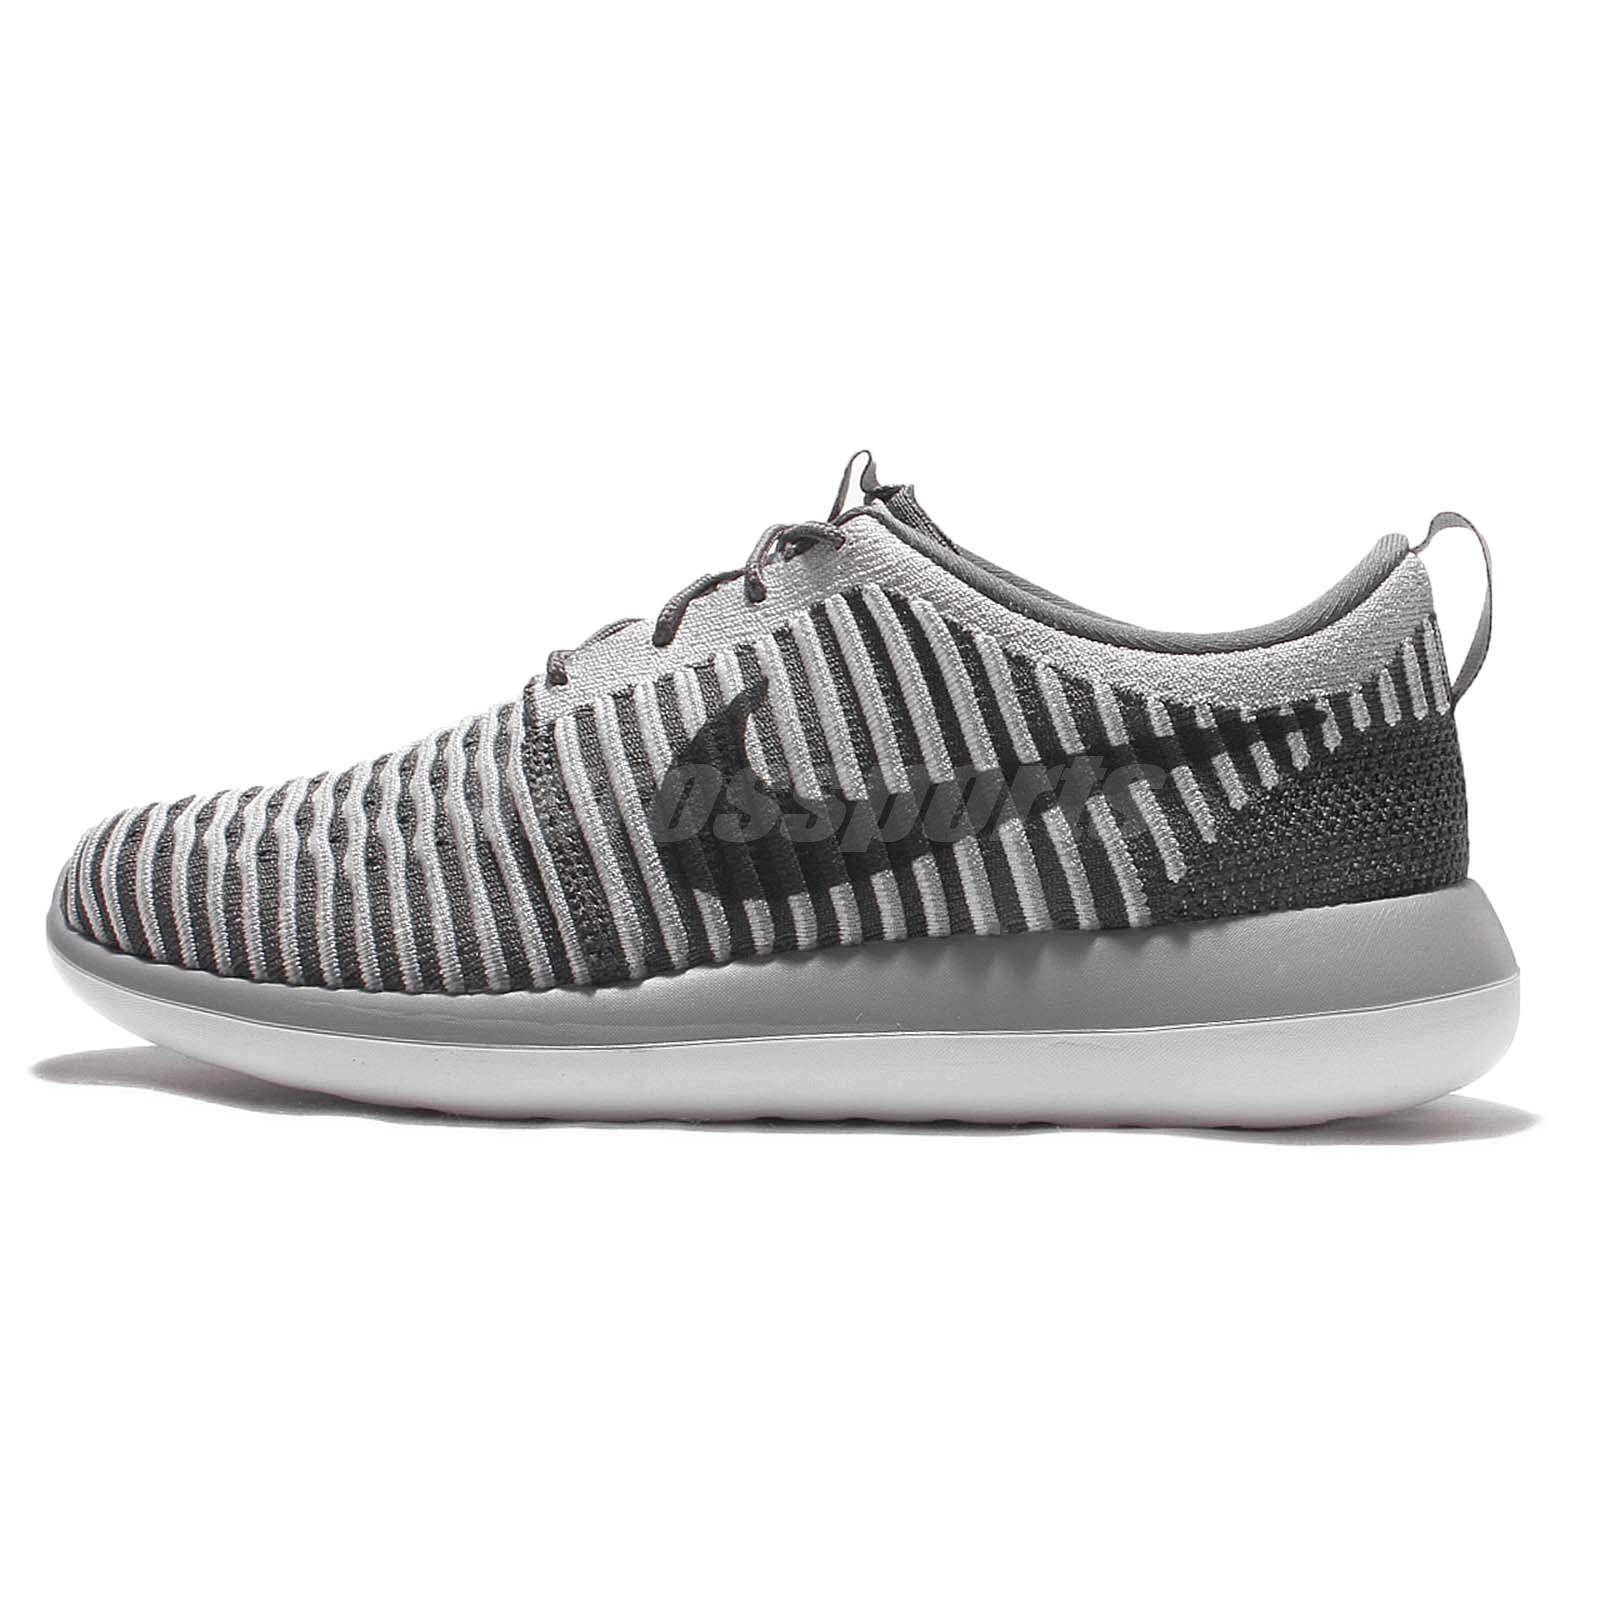 Nike Women 's Roshe Two Midnight Navy Roshe Two Flyknit